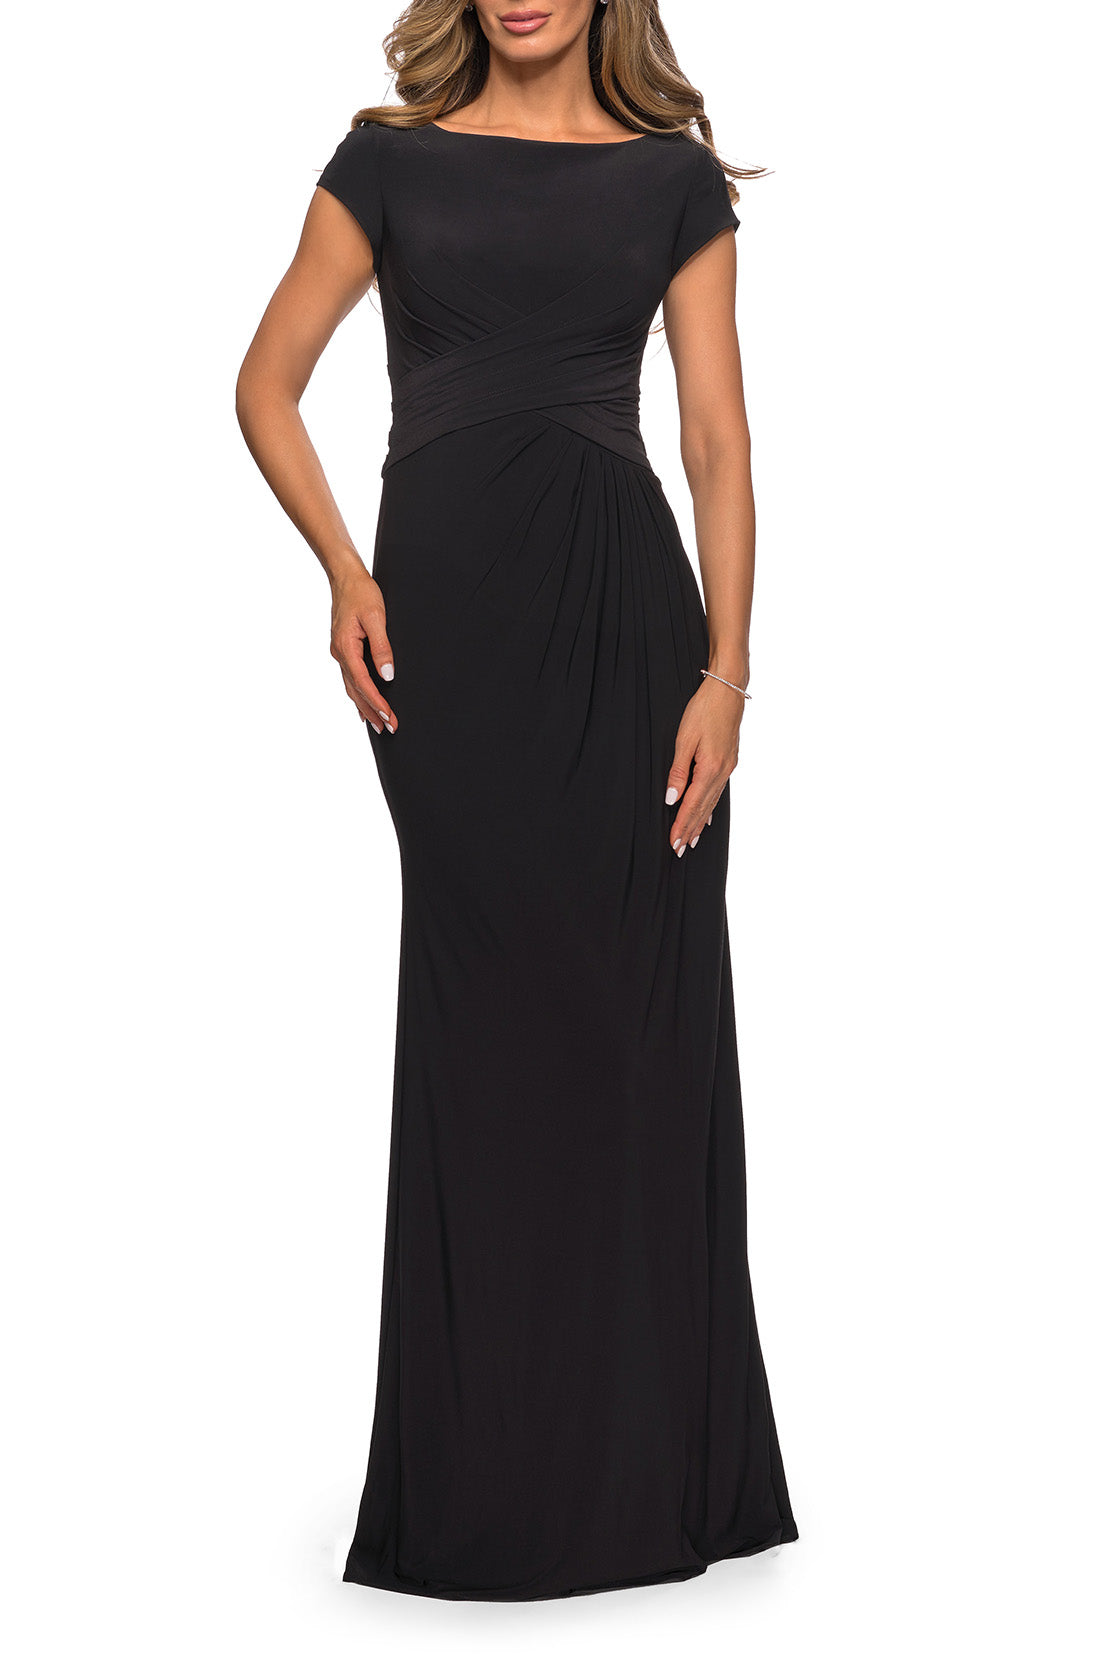 La Femme Mother of the Bride Style 28026